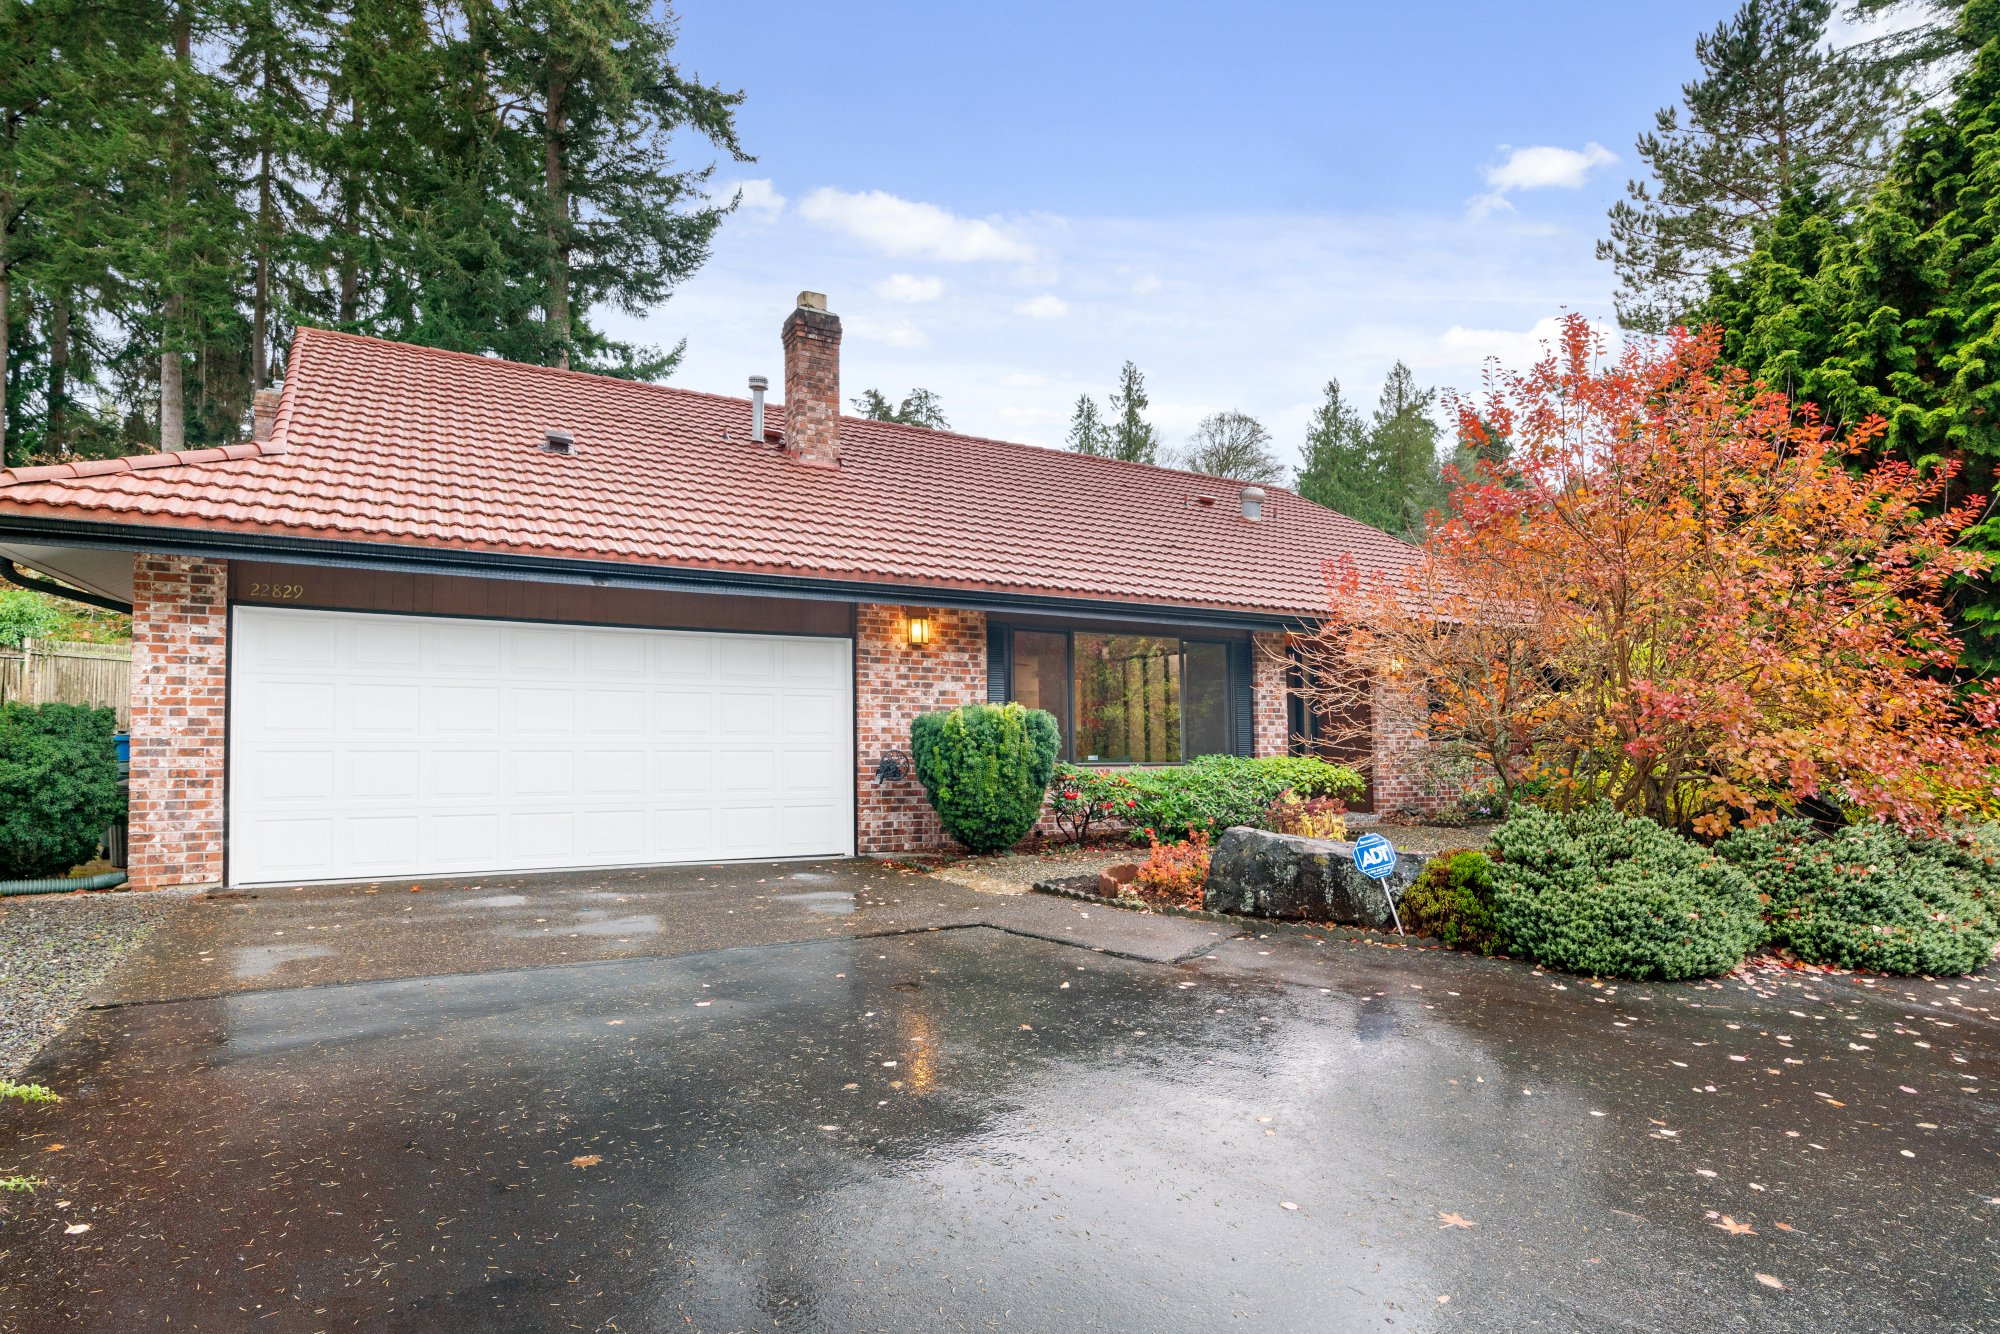 Terry Vehrs_001-22829108thAvenueWest-Edmonds-WA-98020-SMALL